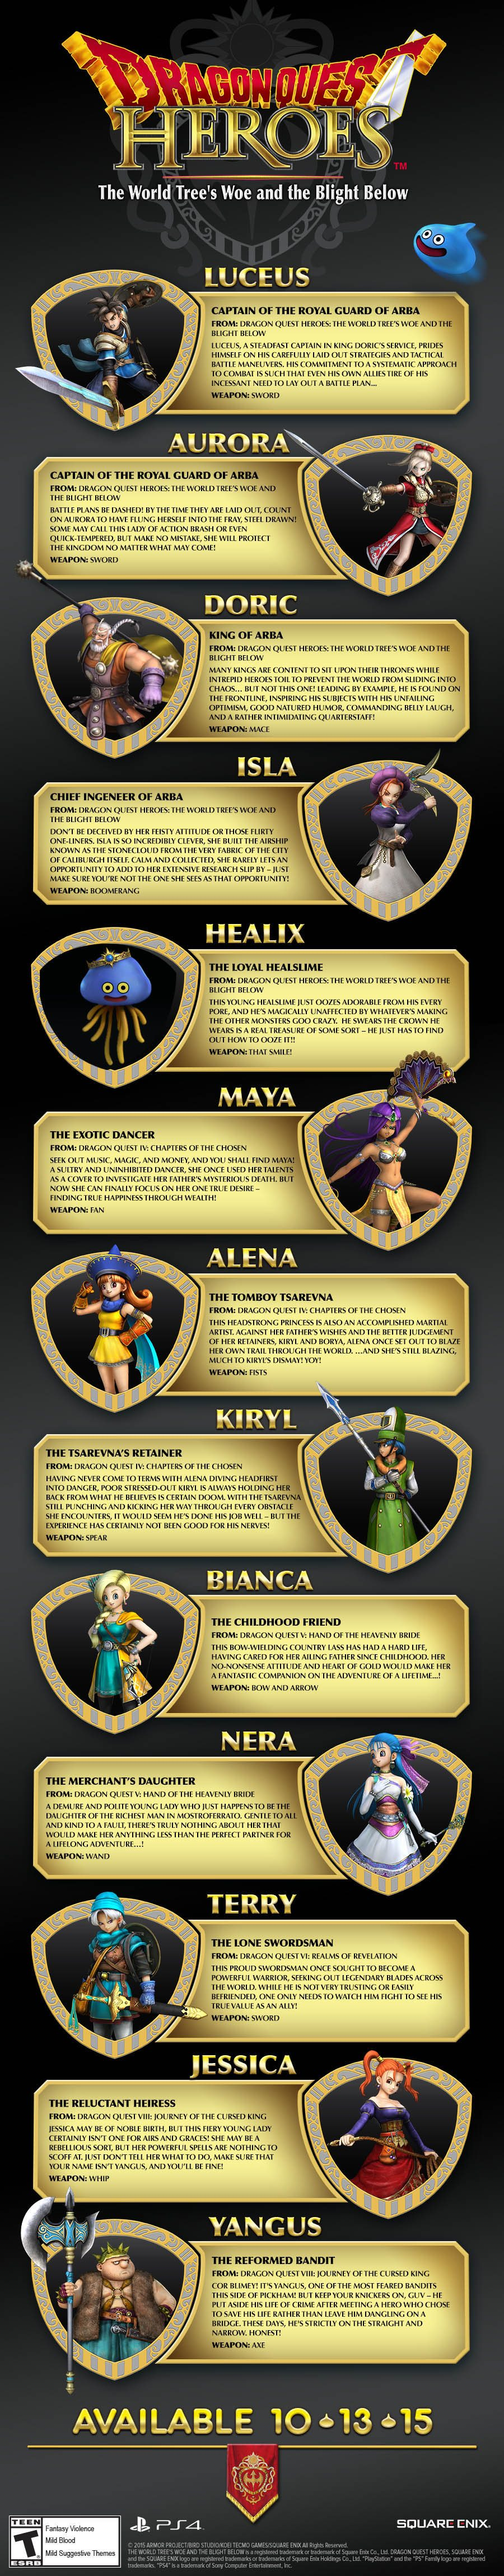 Dragon Quest Heroes Infographic